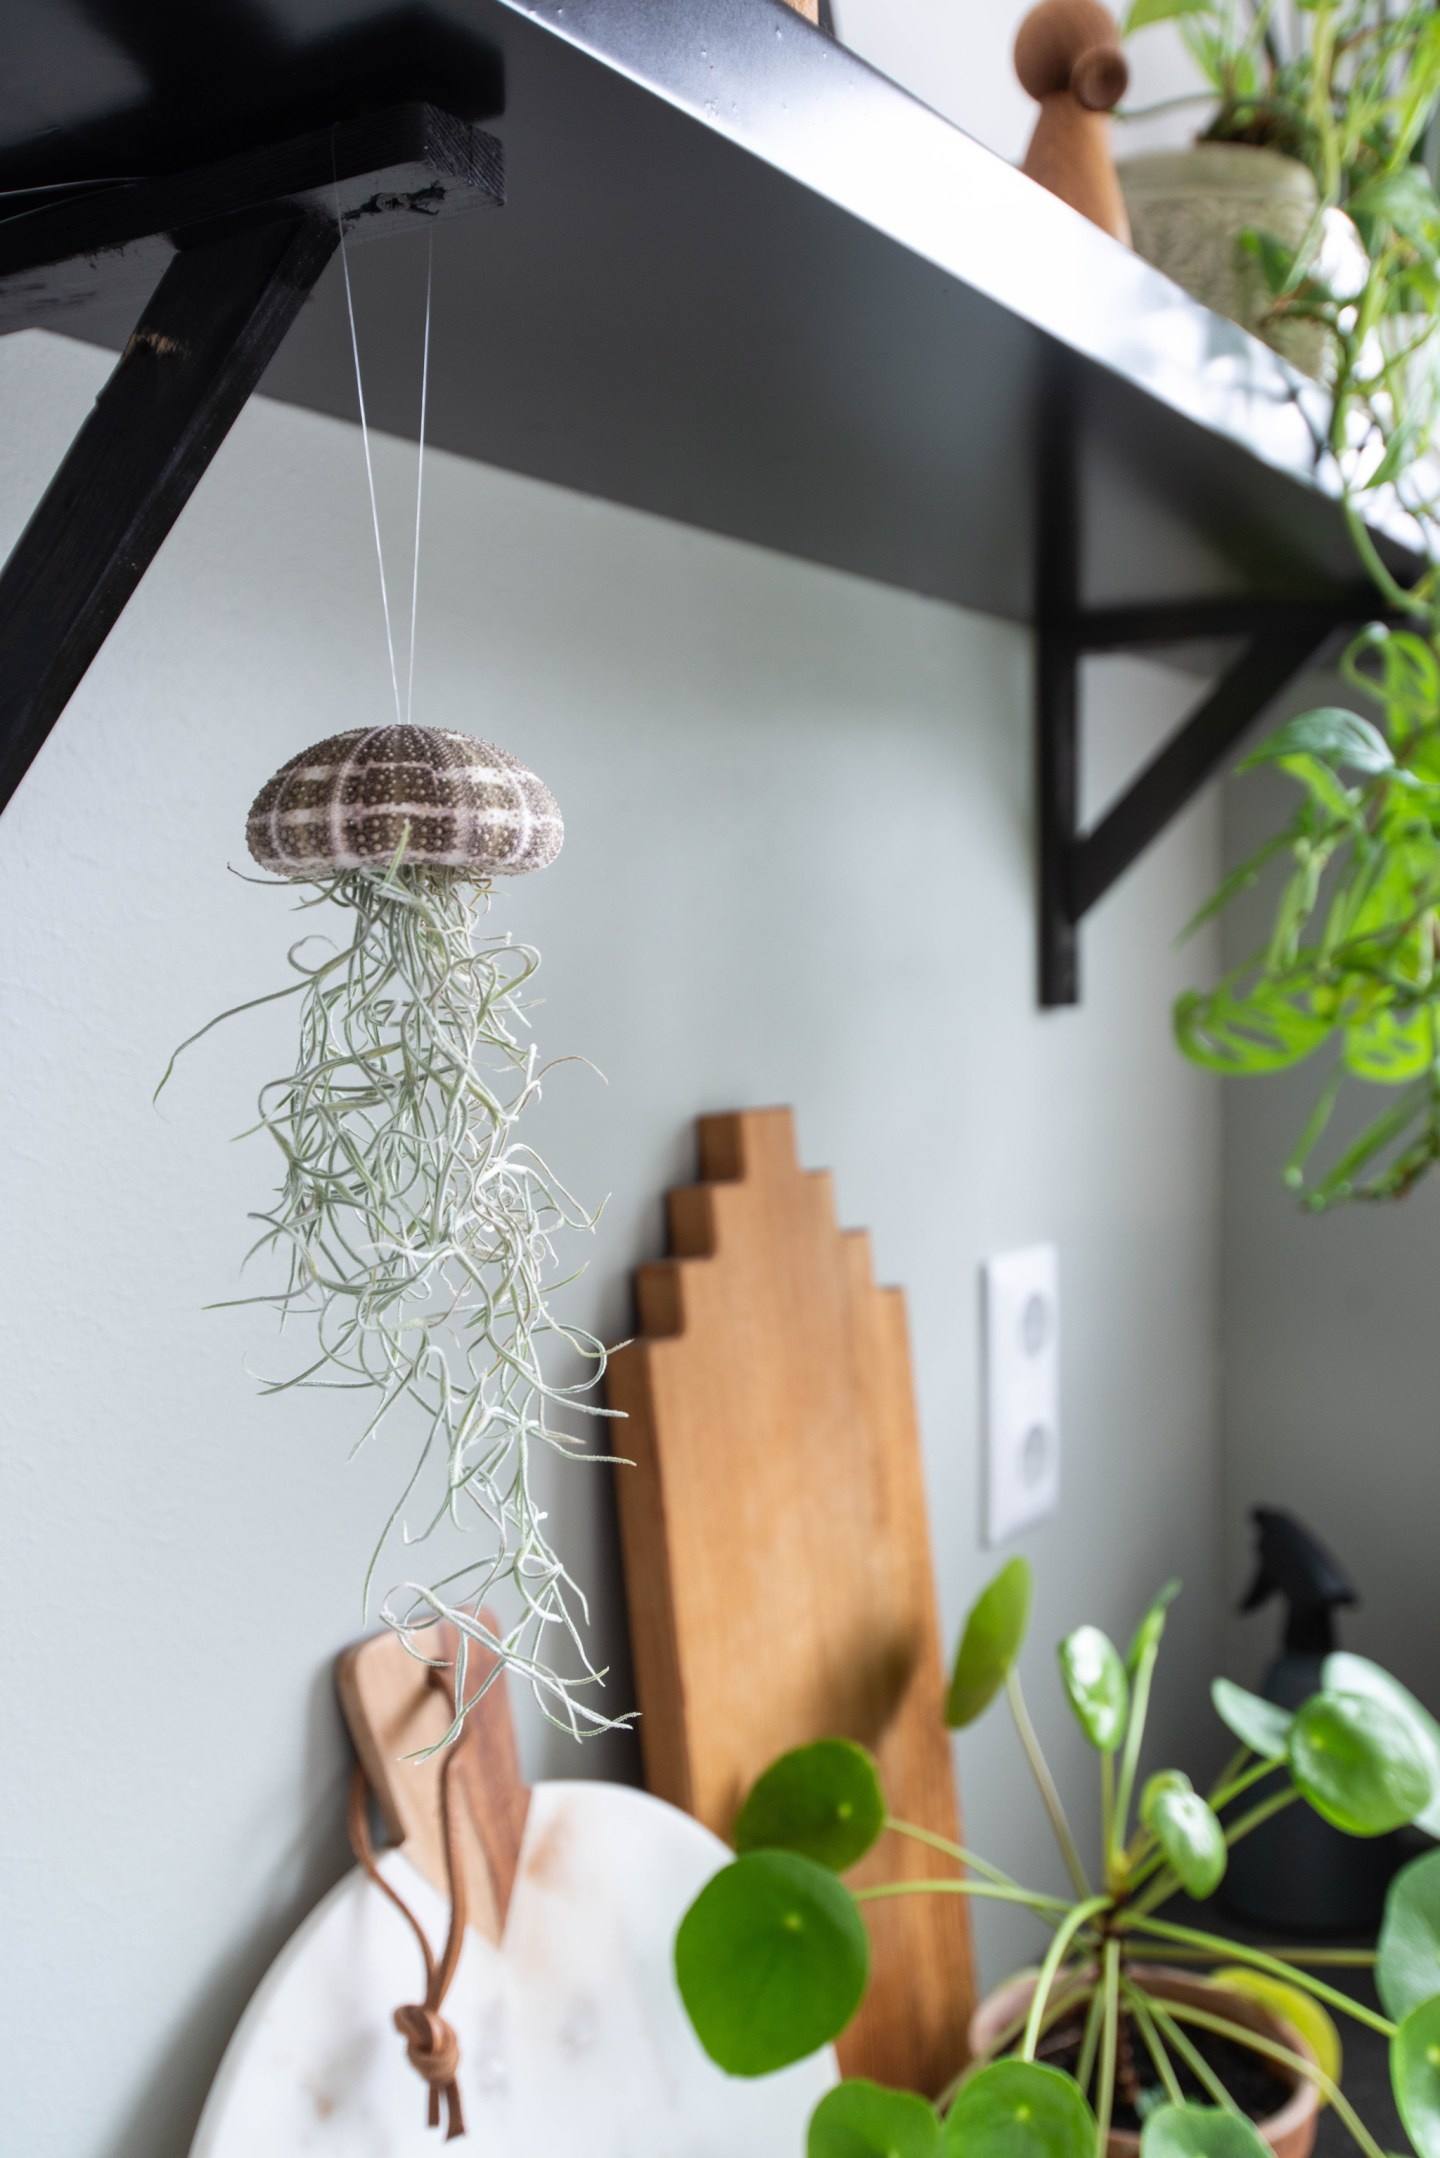 keeelly91 airplants luchtplantjes jellyfish airplantshop tillandsia planten woonaccessoires interieur